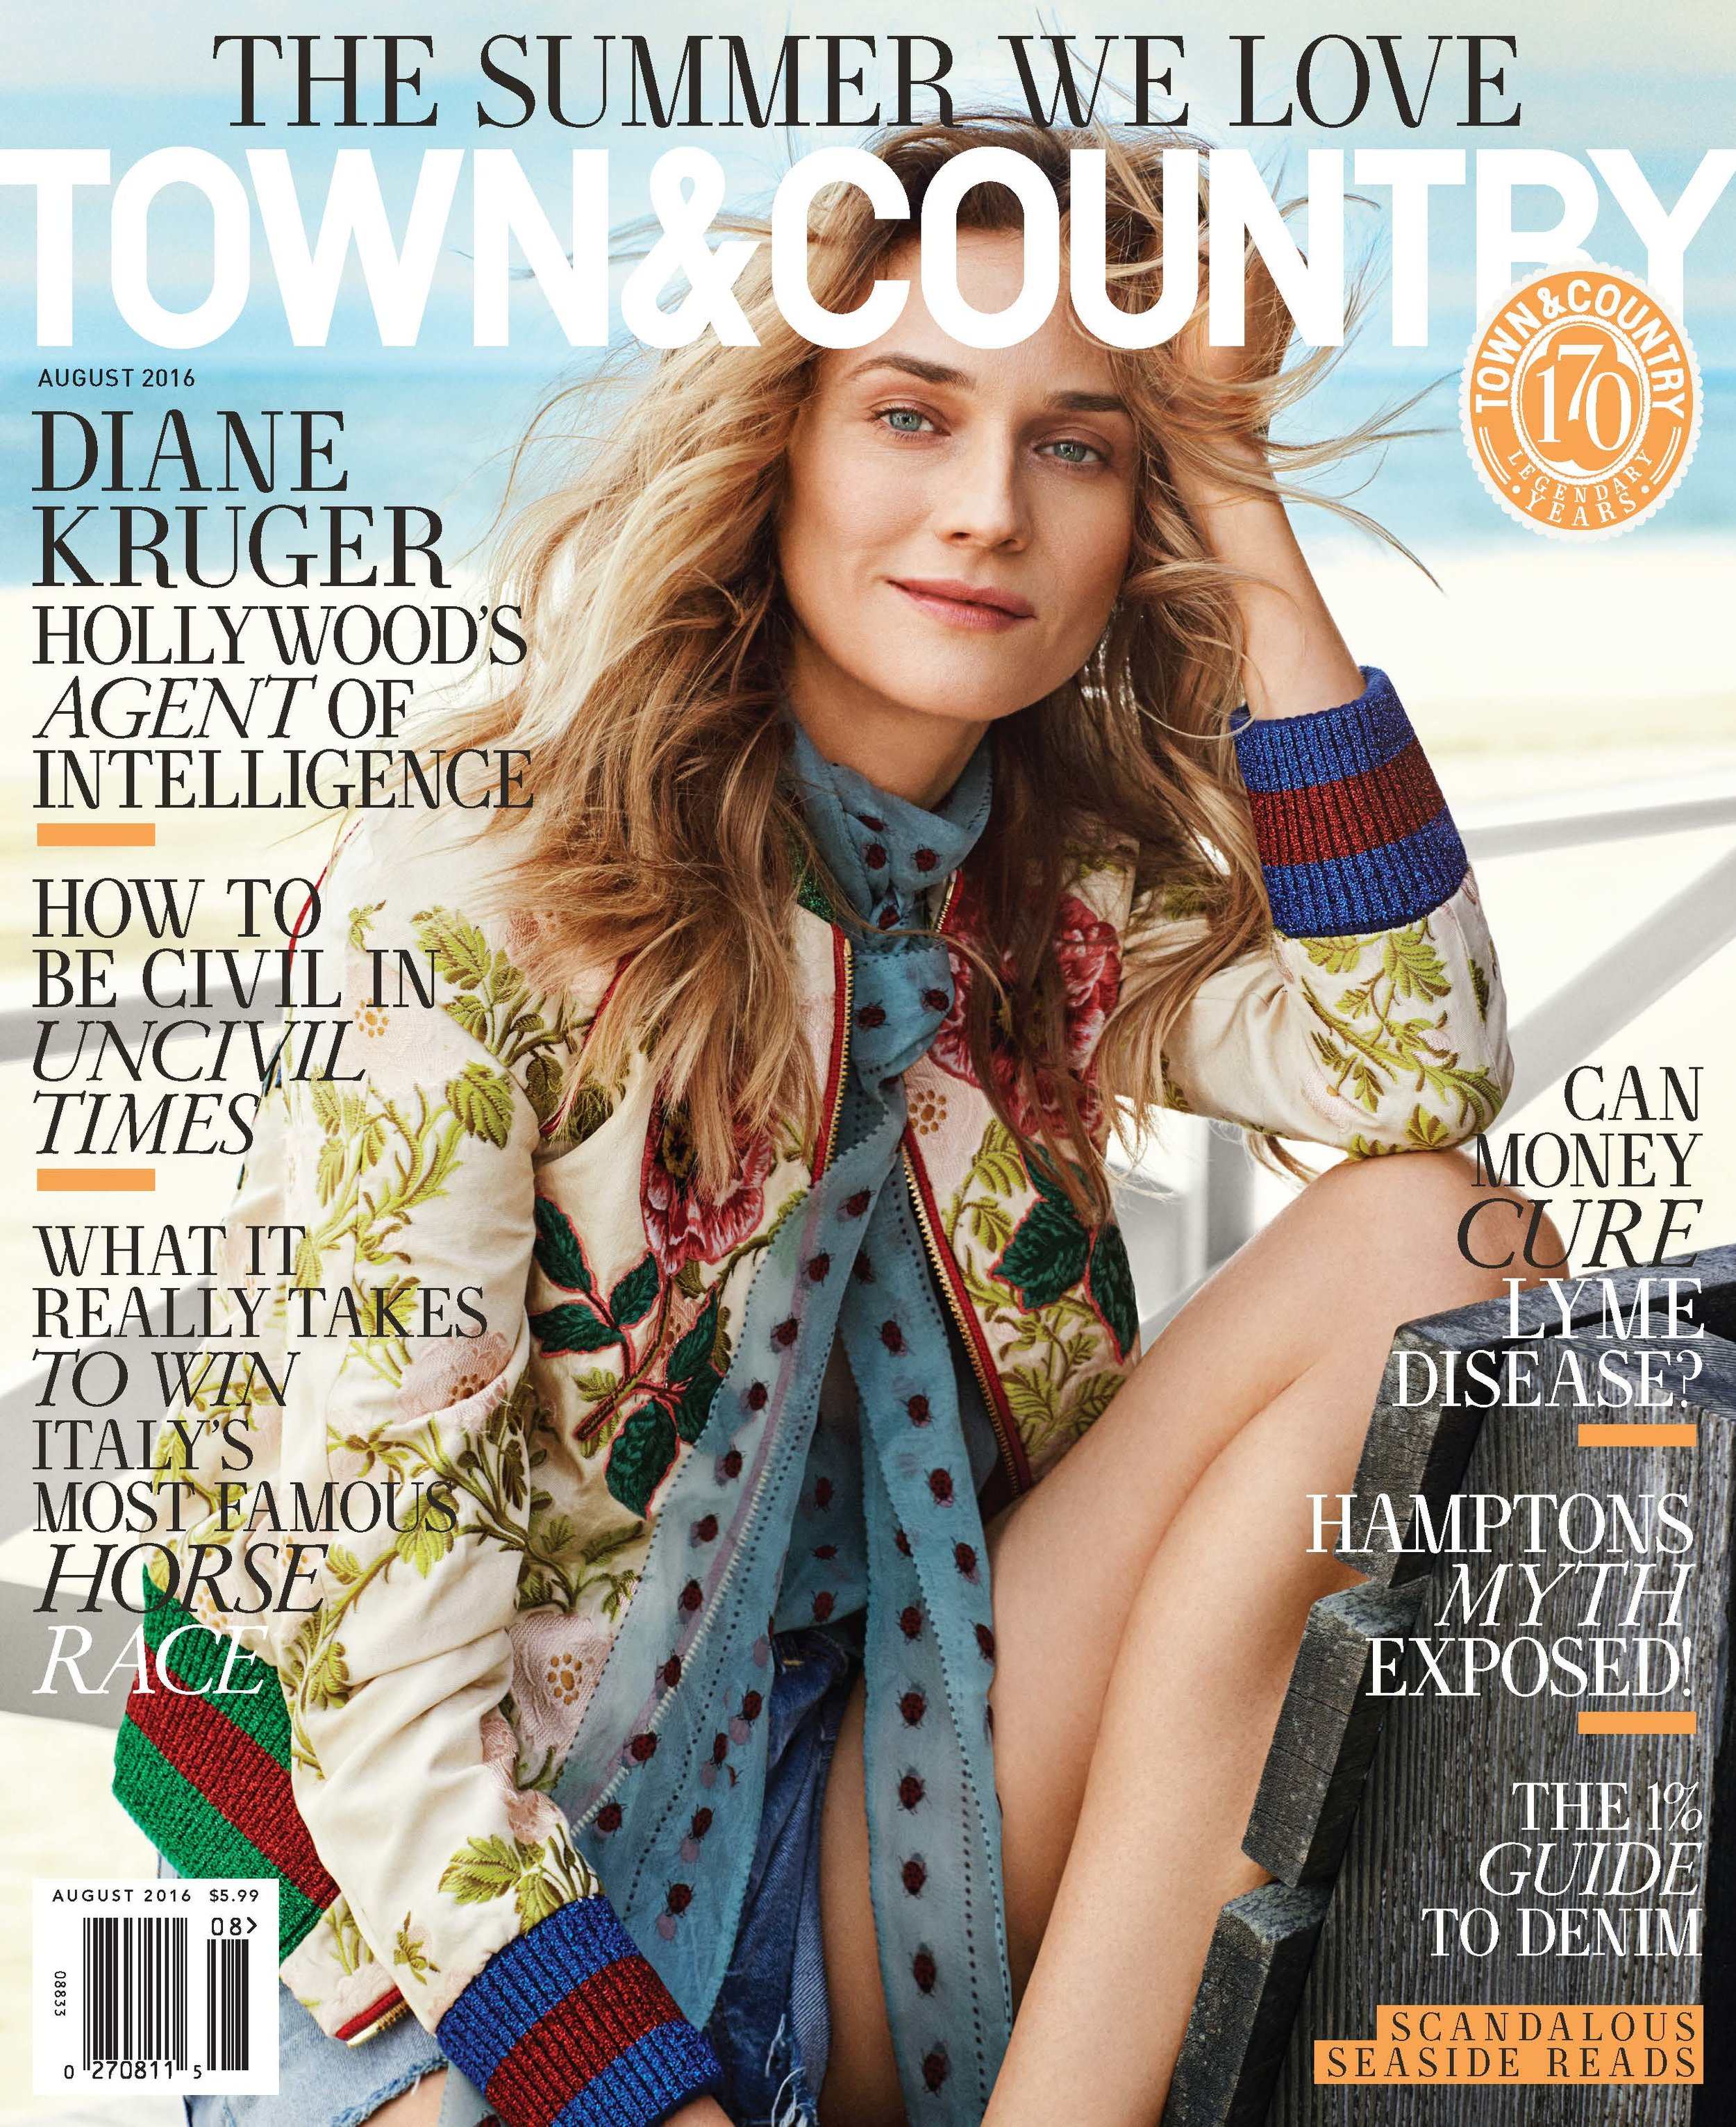 TOWN & COUNTRY MagazineAugust 2016 -